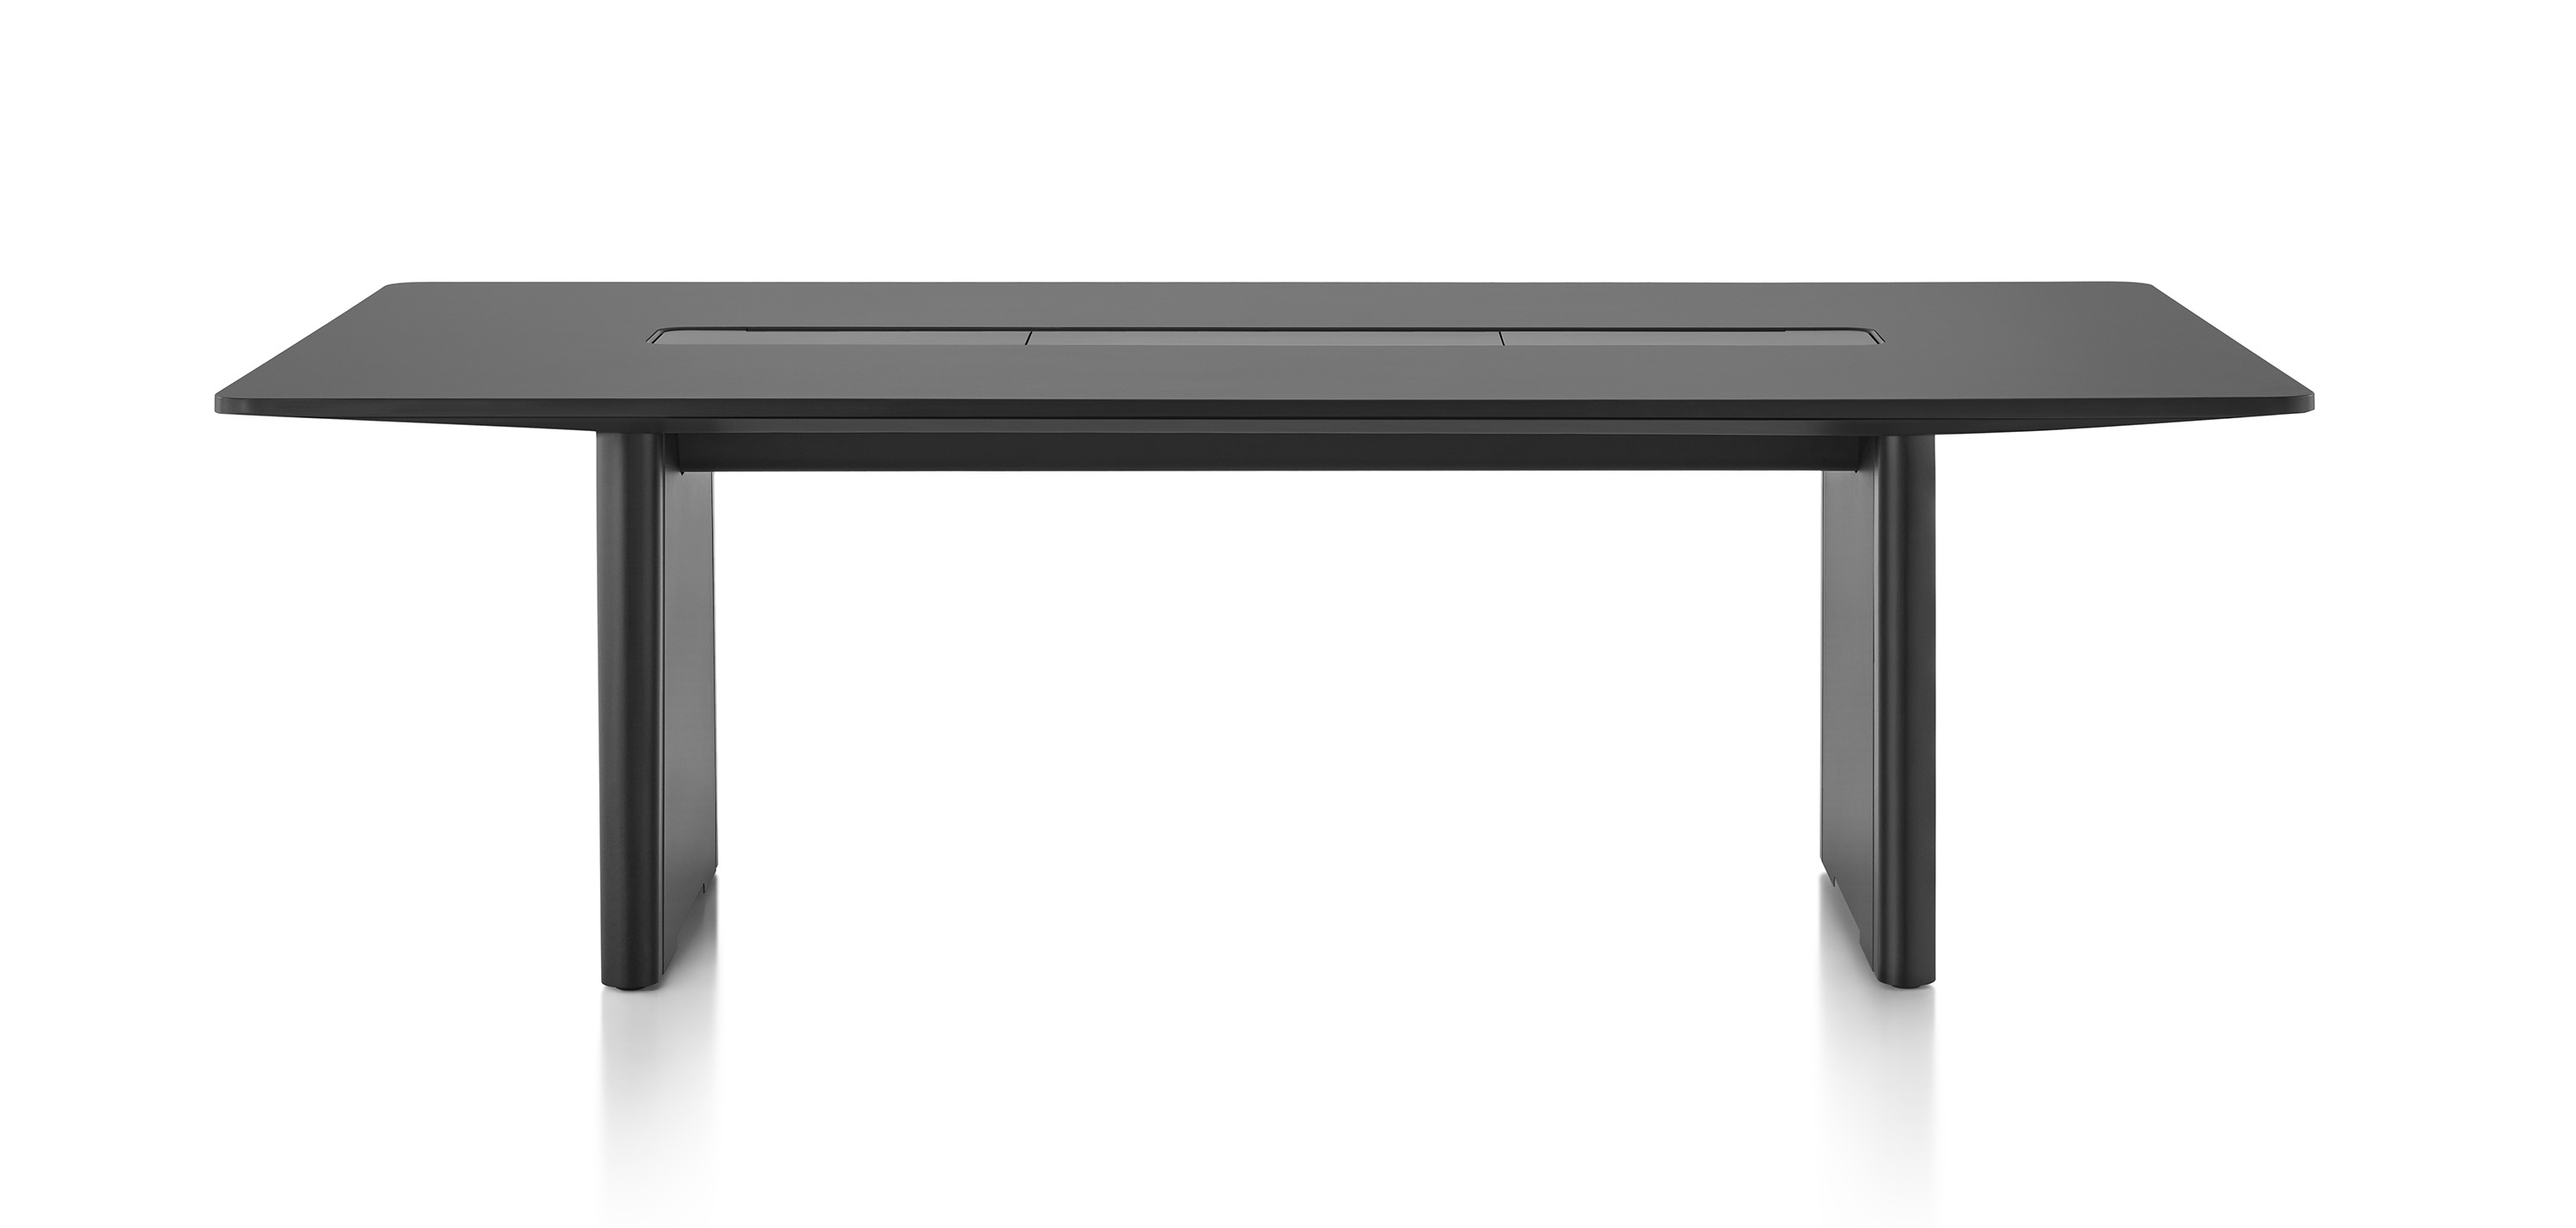 Geiger Axon Table Features Formica Infiniti Surface